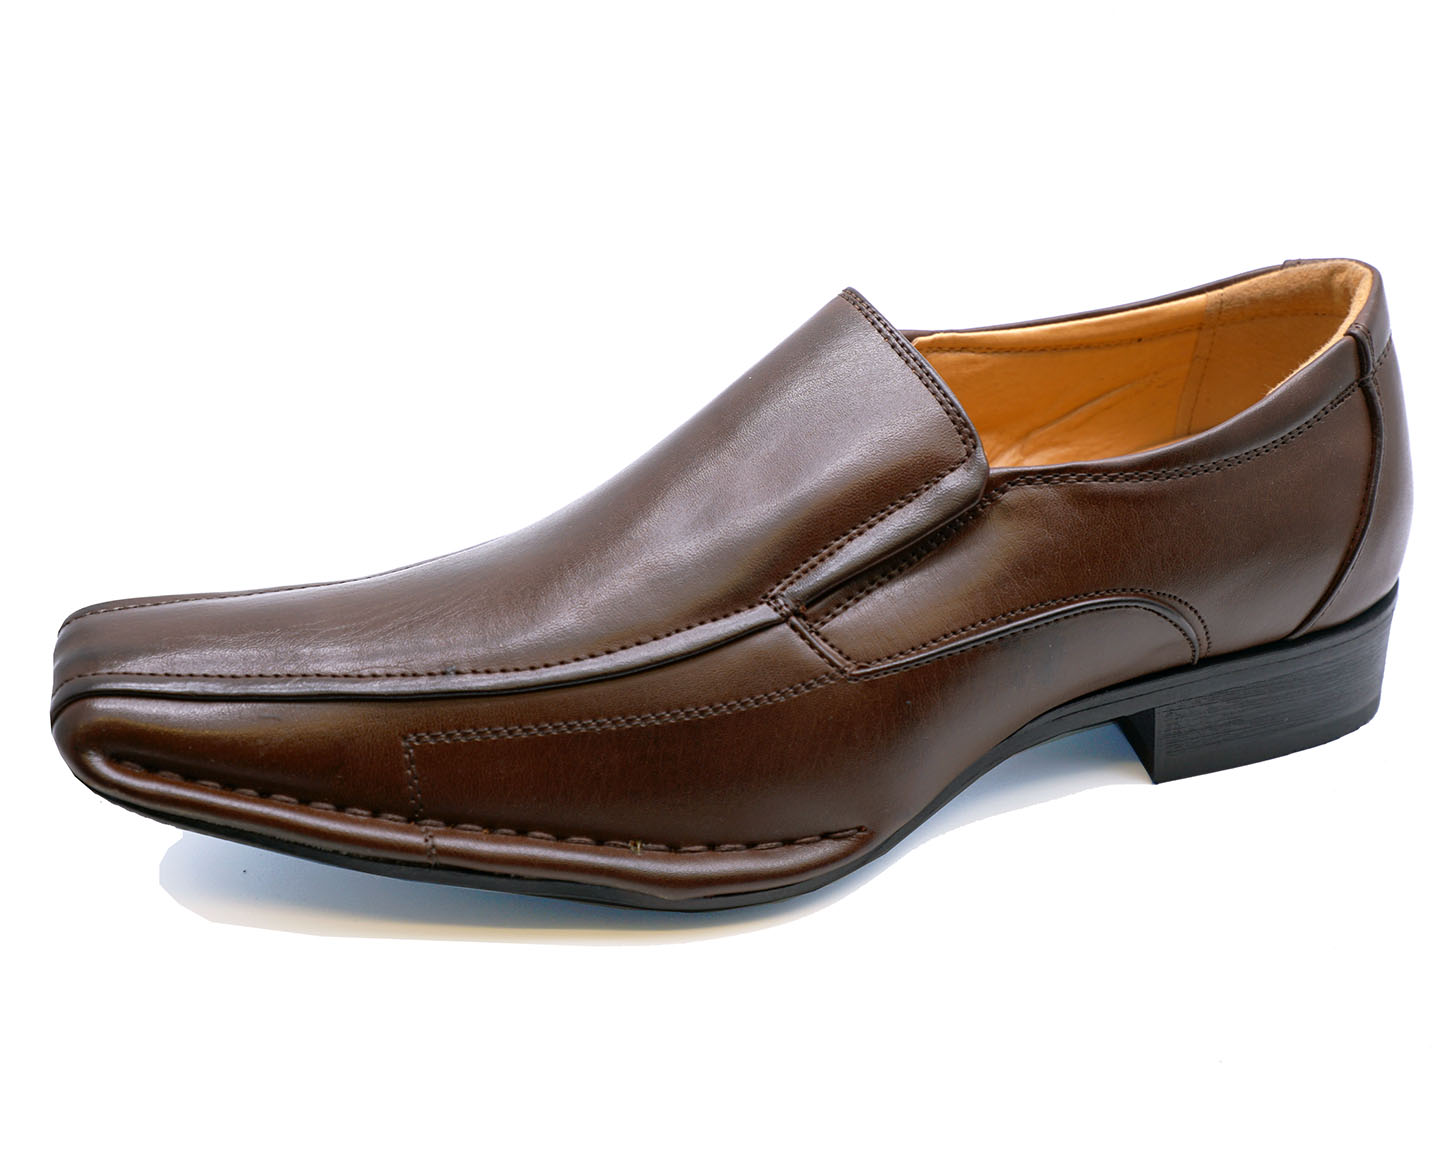 e6334159690 Sentinel MENS DARK BROWN SLIP-ON WORK WEDDING SMART CASUAL LOAFERS SHOES  SIZES 6-11